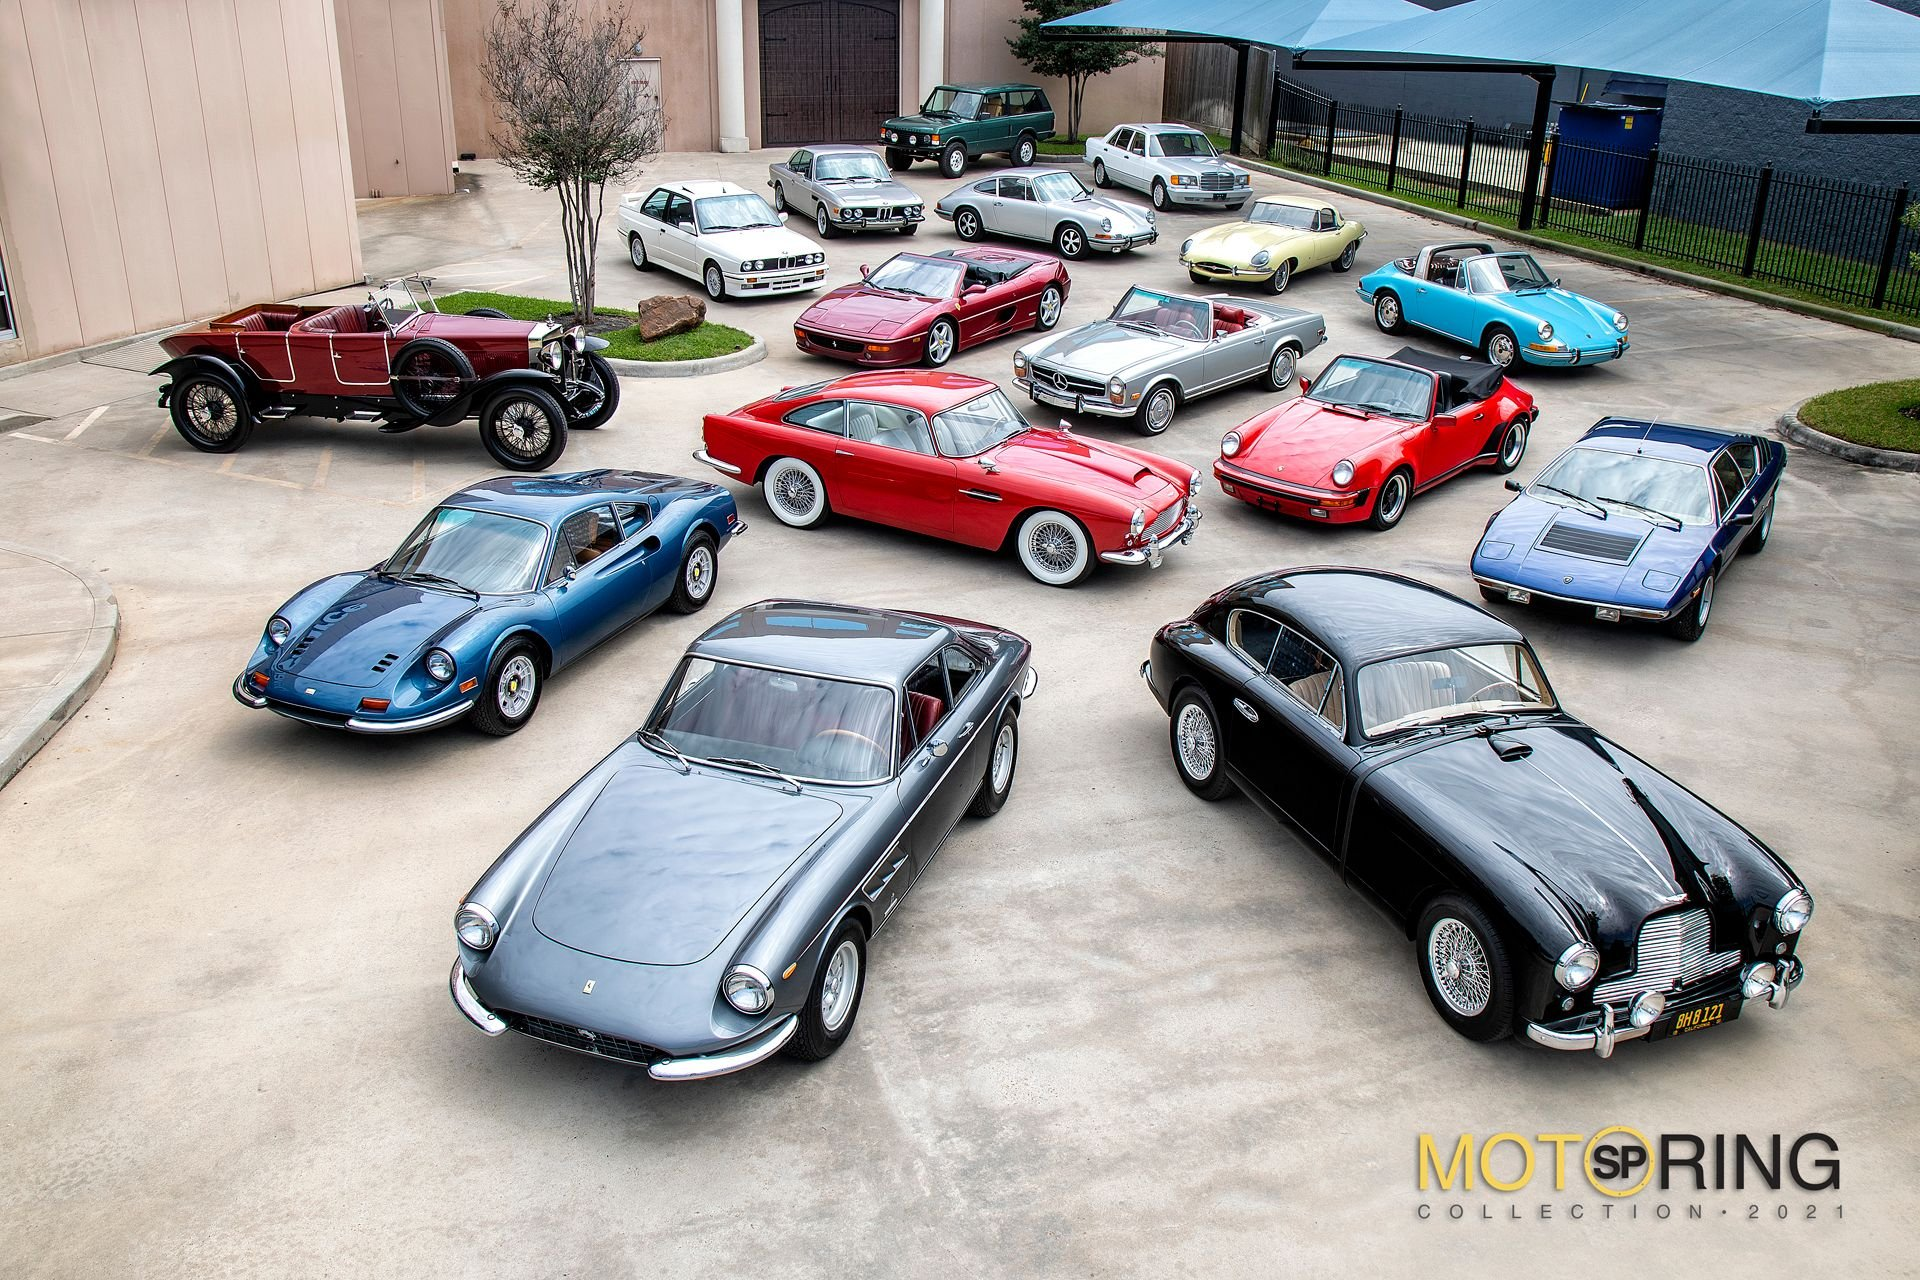 A driversource spring motoring collection